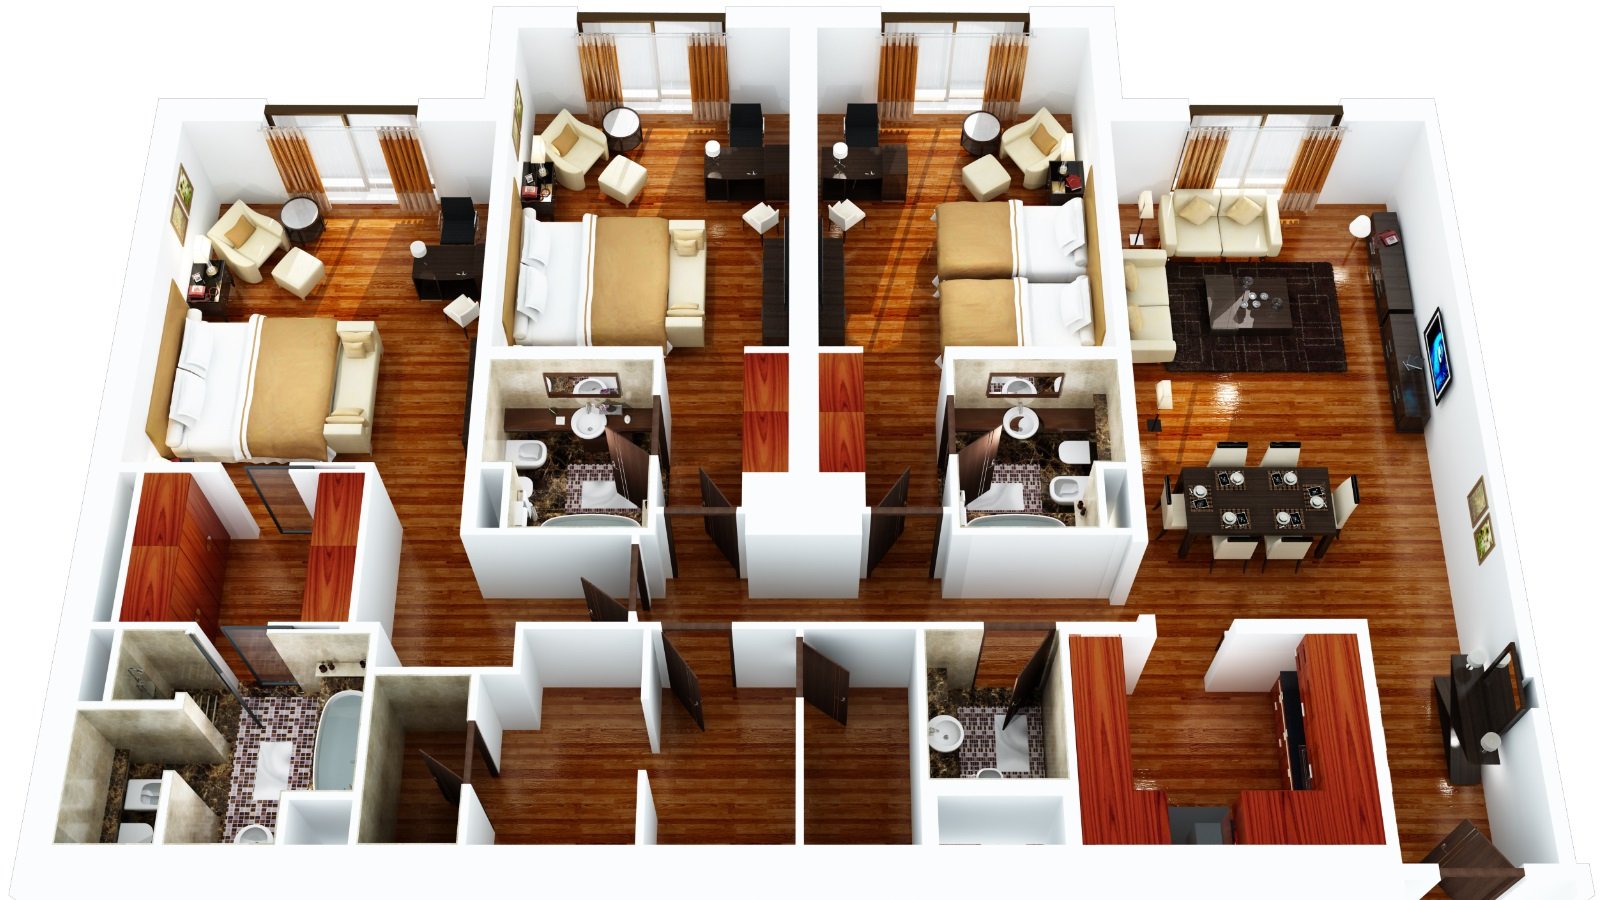 Grosvenor house dubai 2 bedroom residence apartments for 3 bedroom a